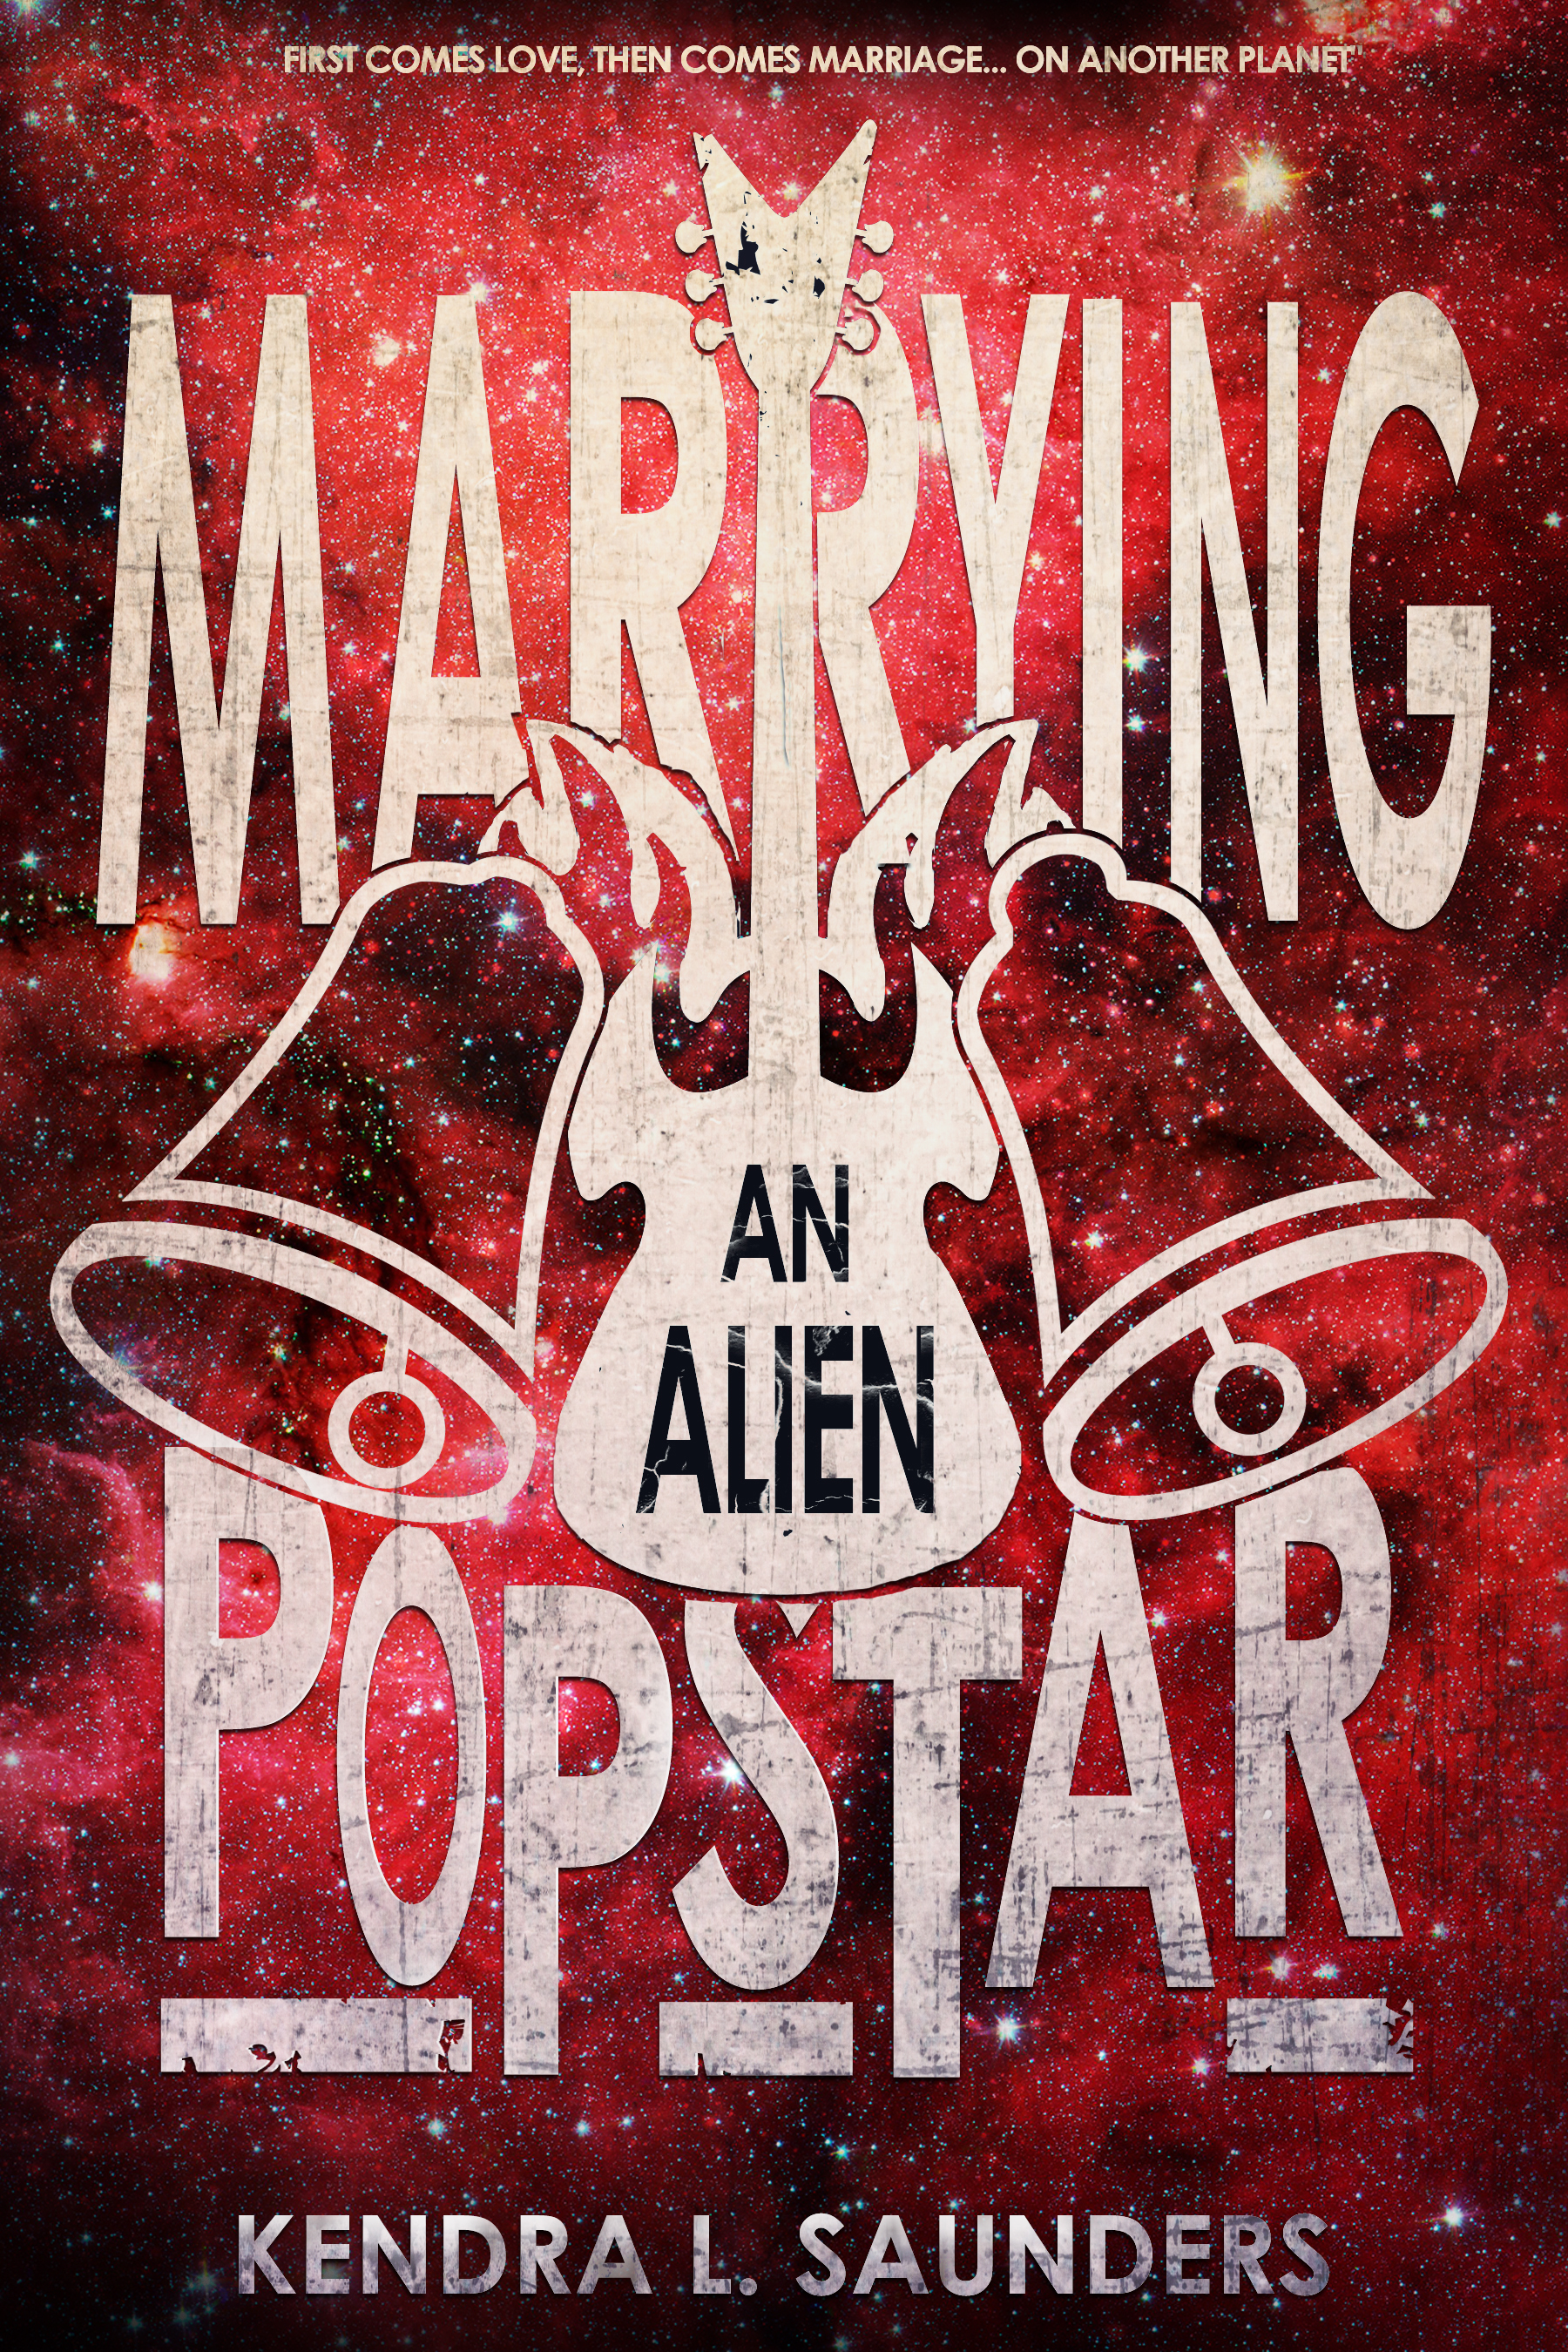 Marrying an Alien Pop Star